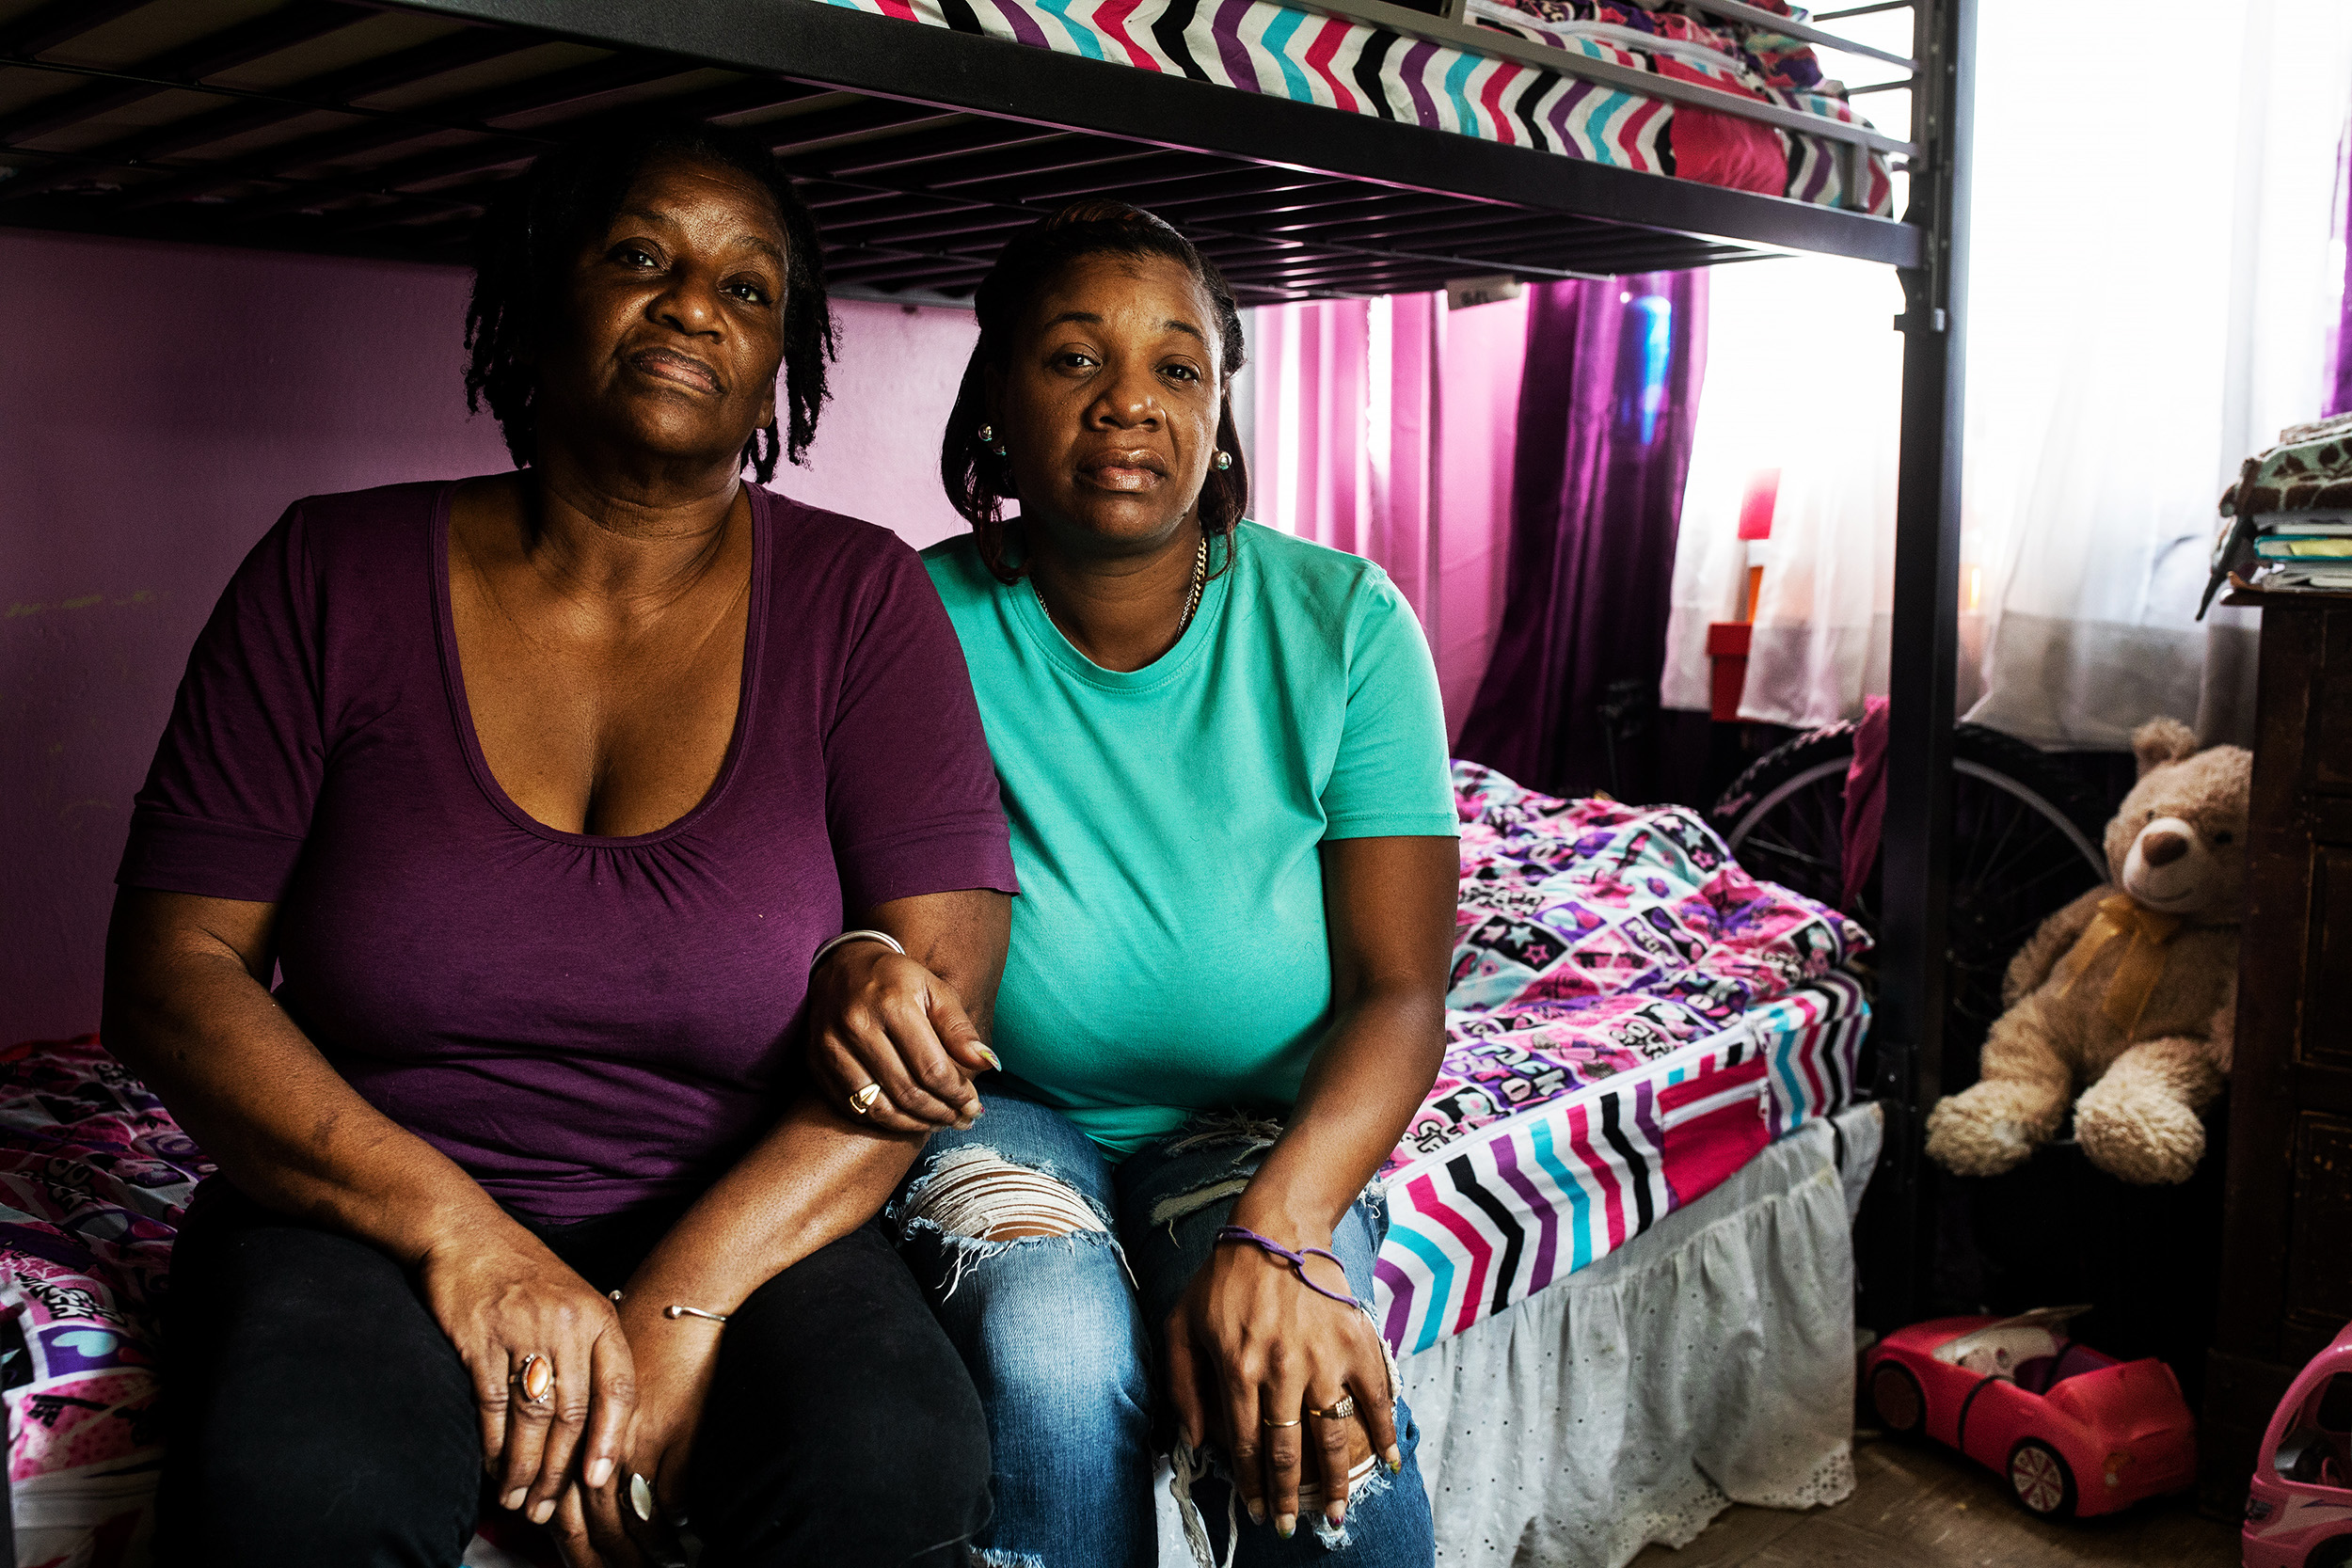 Jamila Cox, right, and Robin Parks at their apartment in Astoria Queens, New York. Jamila is a foster mother who took in a little girl and baby boy who lived next door after the children mother was killed in January 2017.